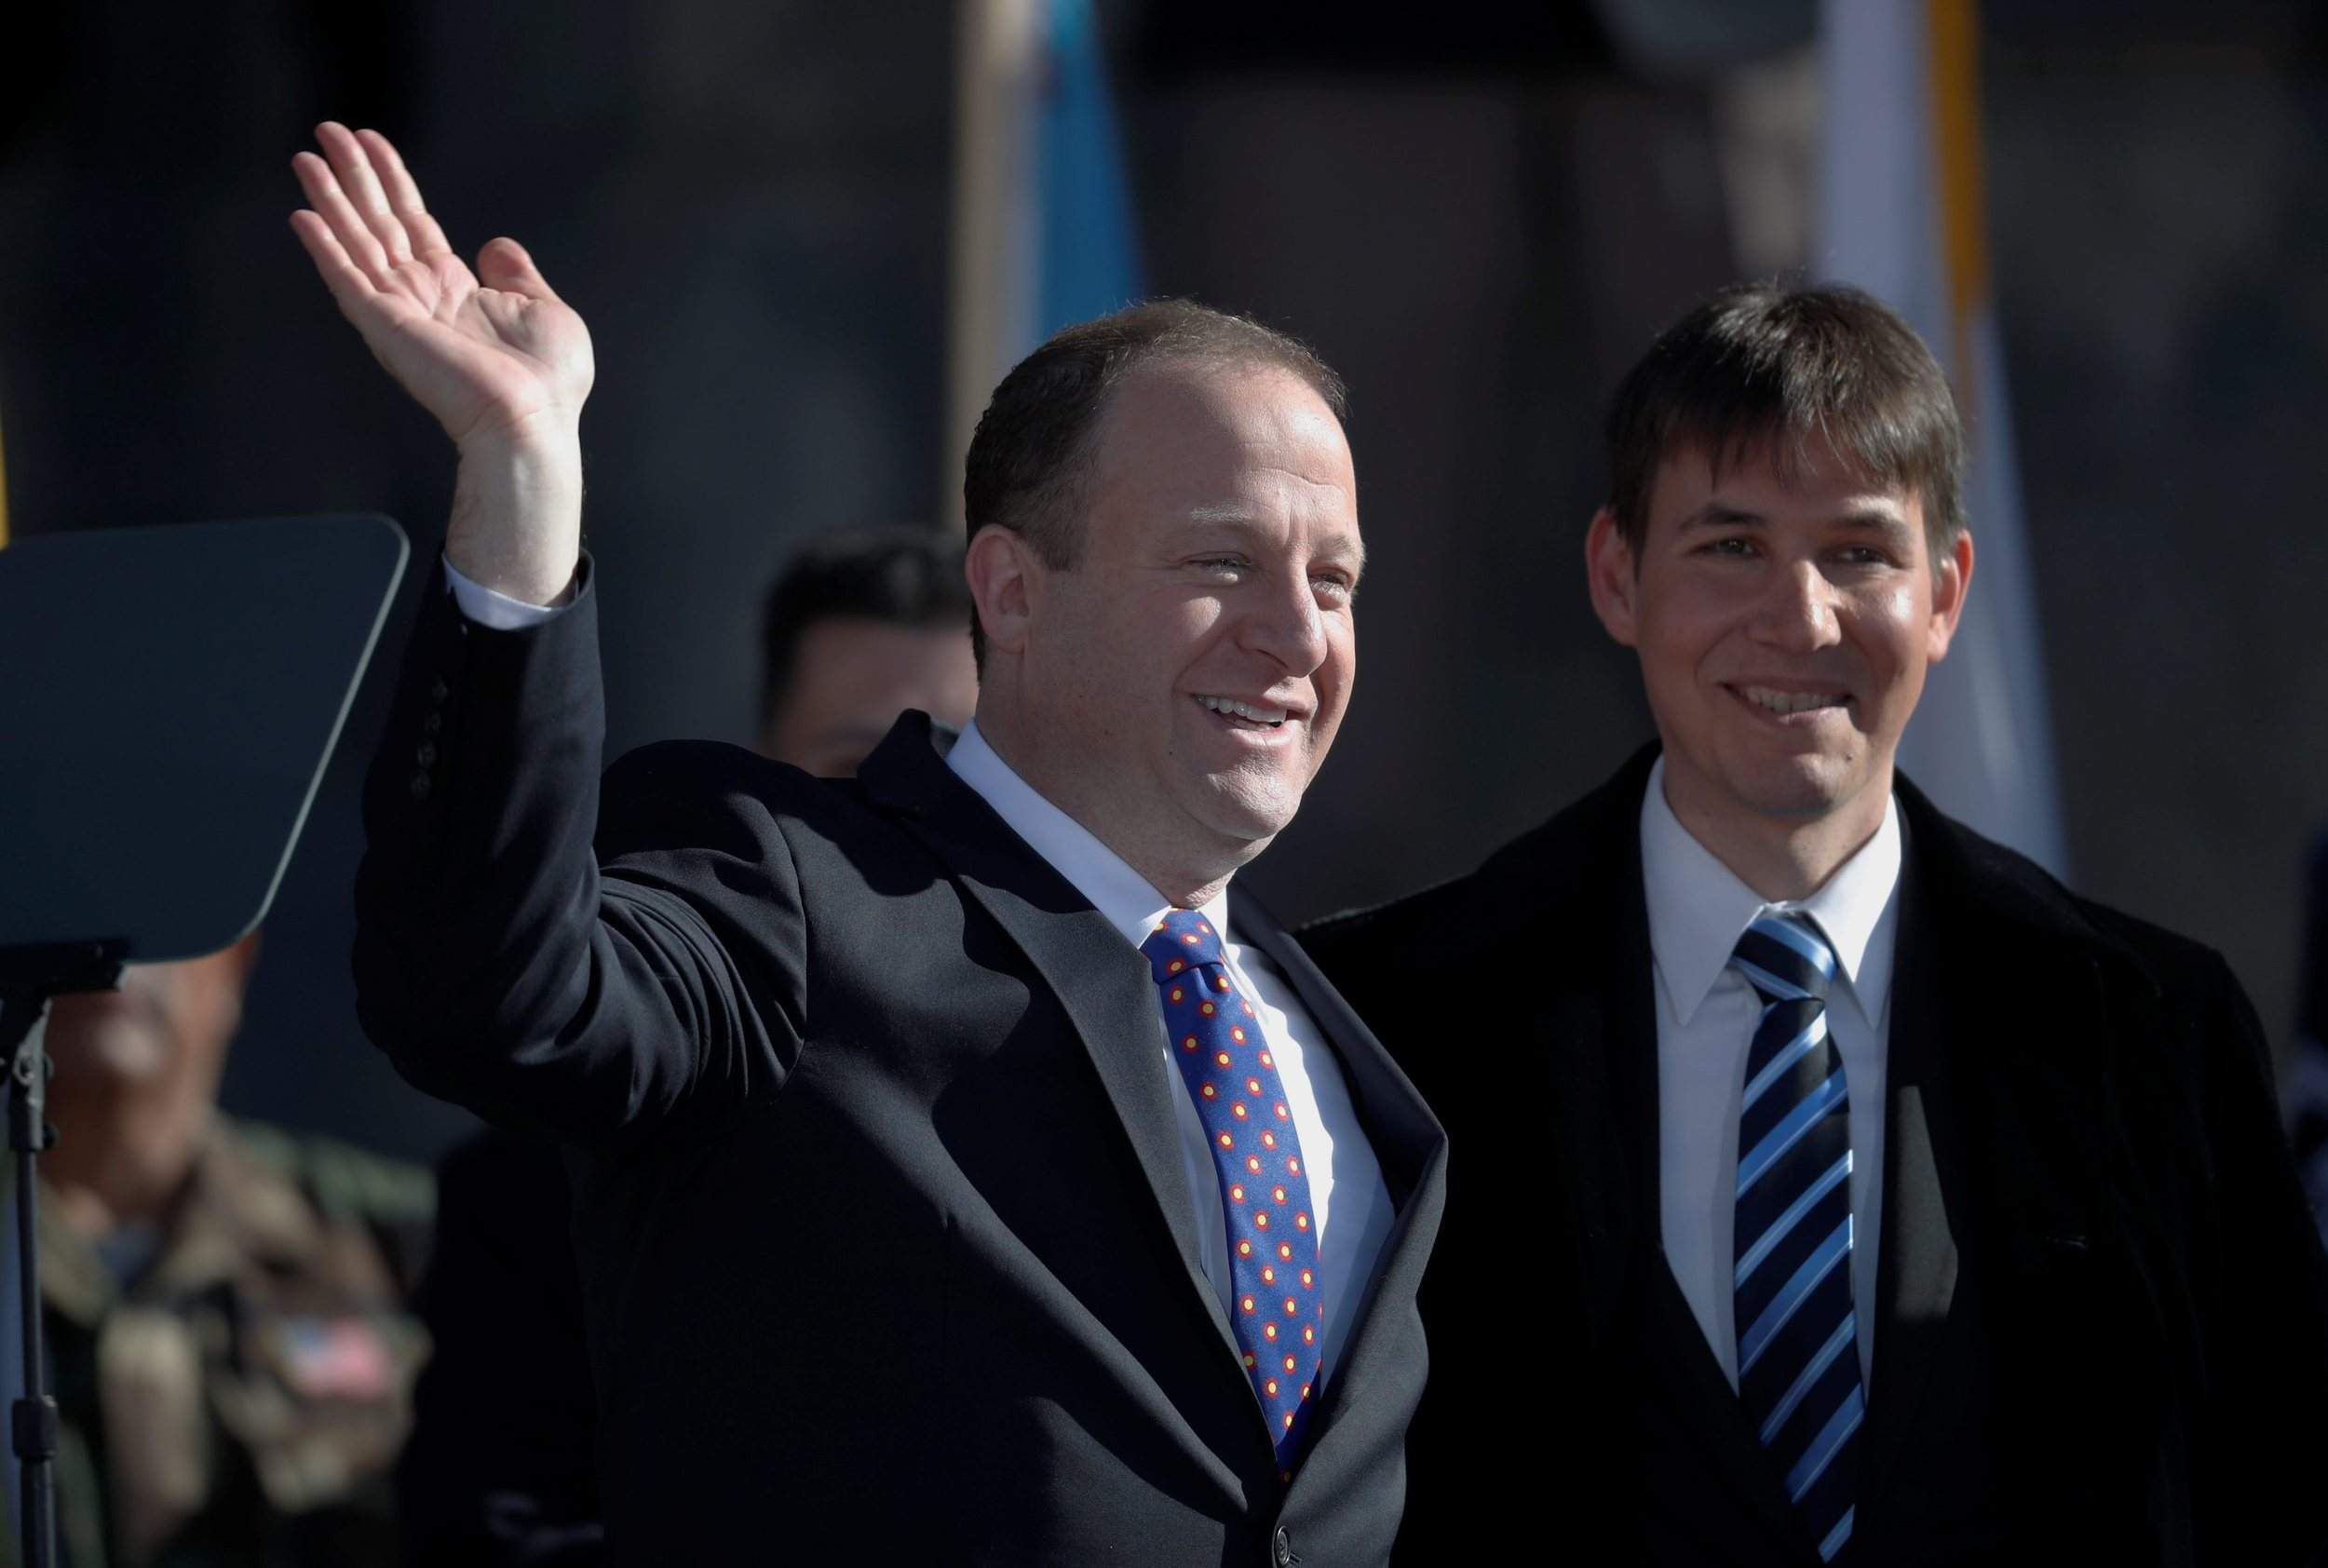 Colorado Gov. Jared Polis and his partner test positive for COVID-19